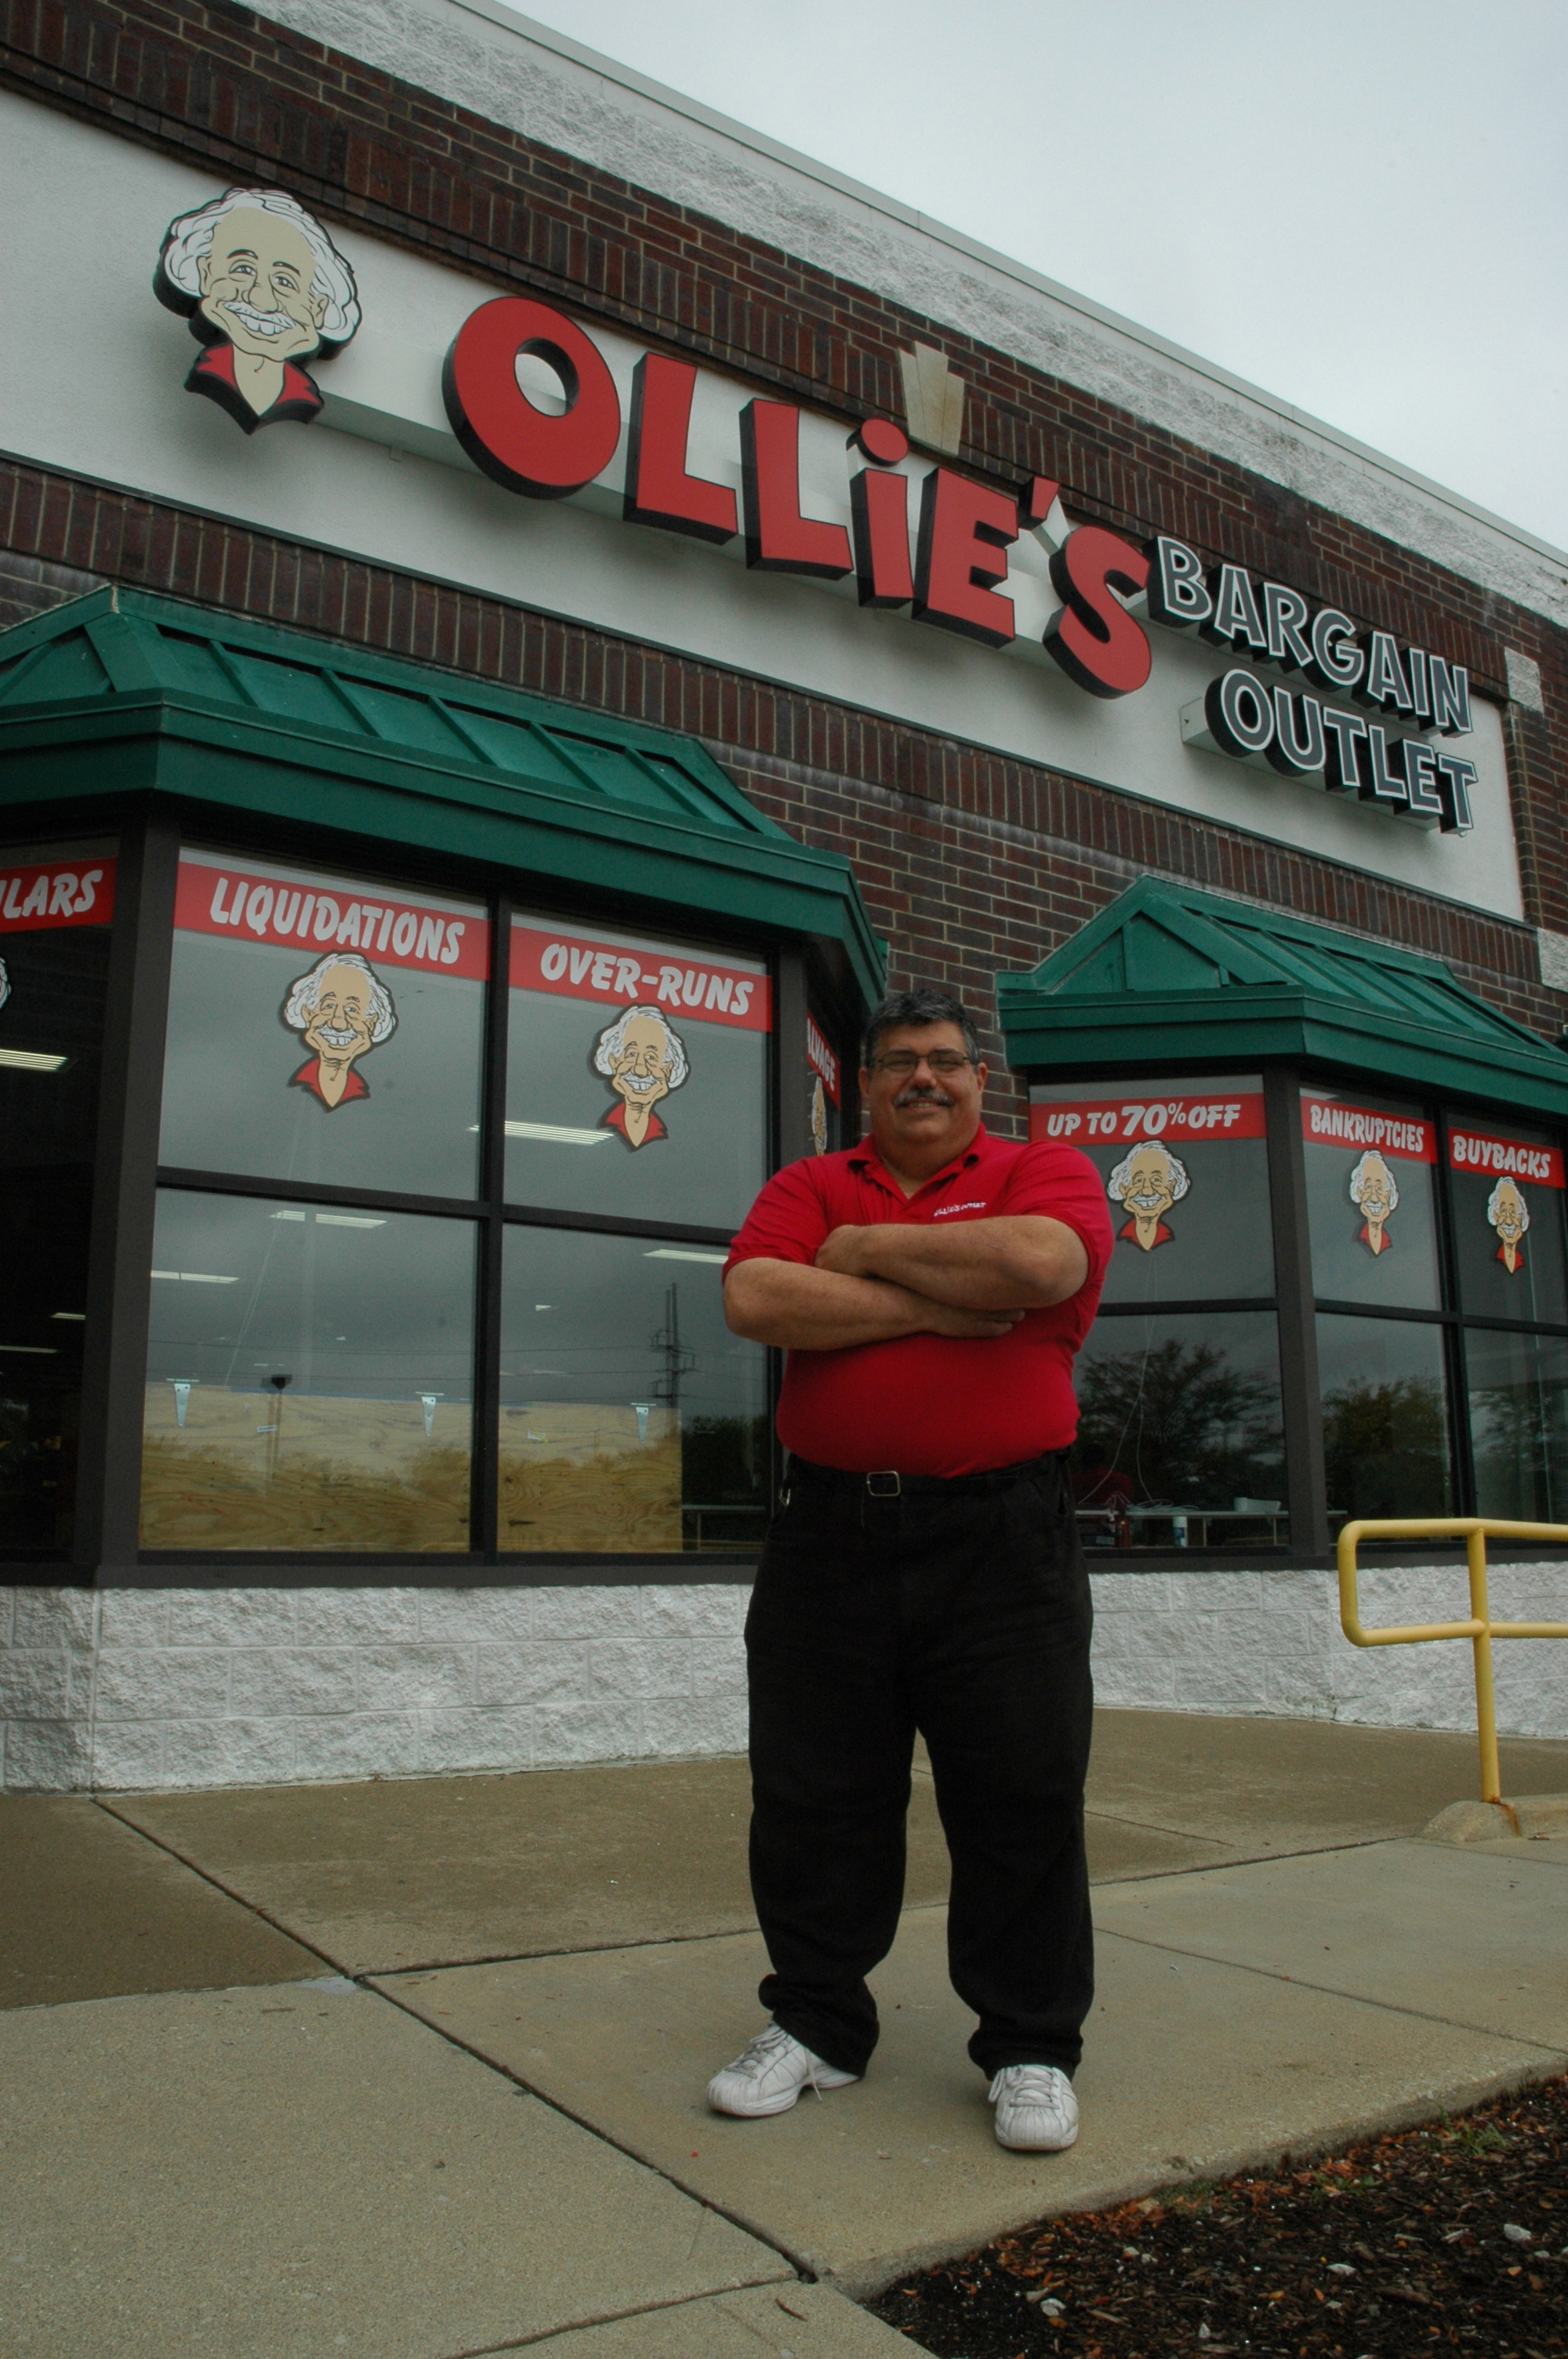 John Santora is the store operating coordinator of Ollie's Bargain Outlet which distinguishes itself from its competition by selling name brand products at prices usually reserved for cheap imitations. Staff photo